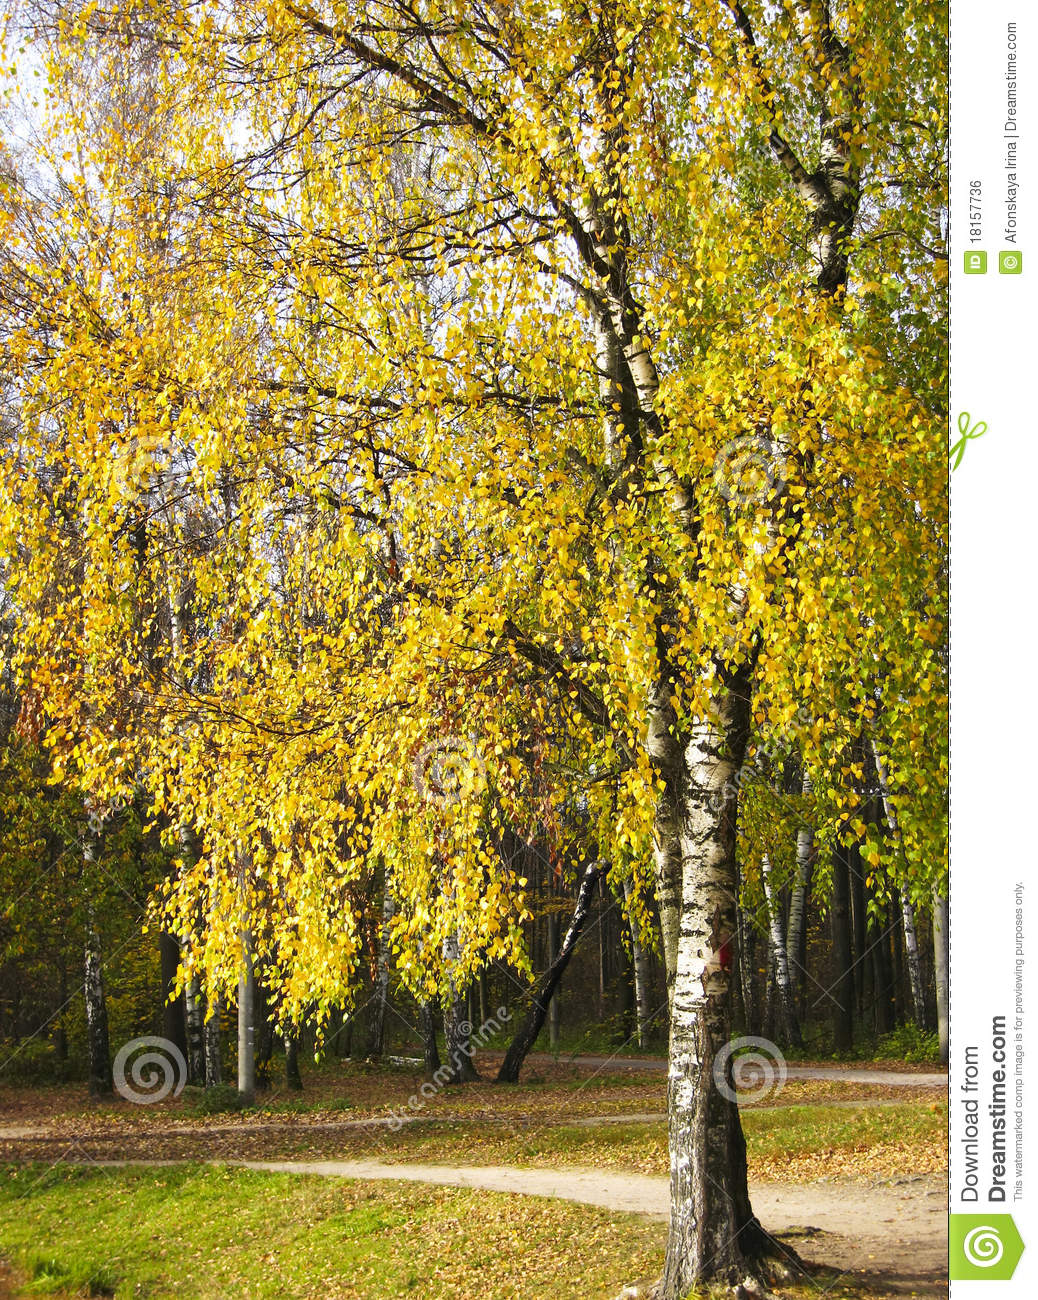 Yellow Birch Tree Royalty Free Stock Image - Image: 18157736